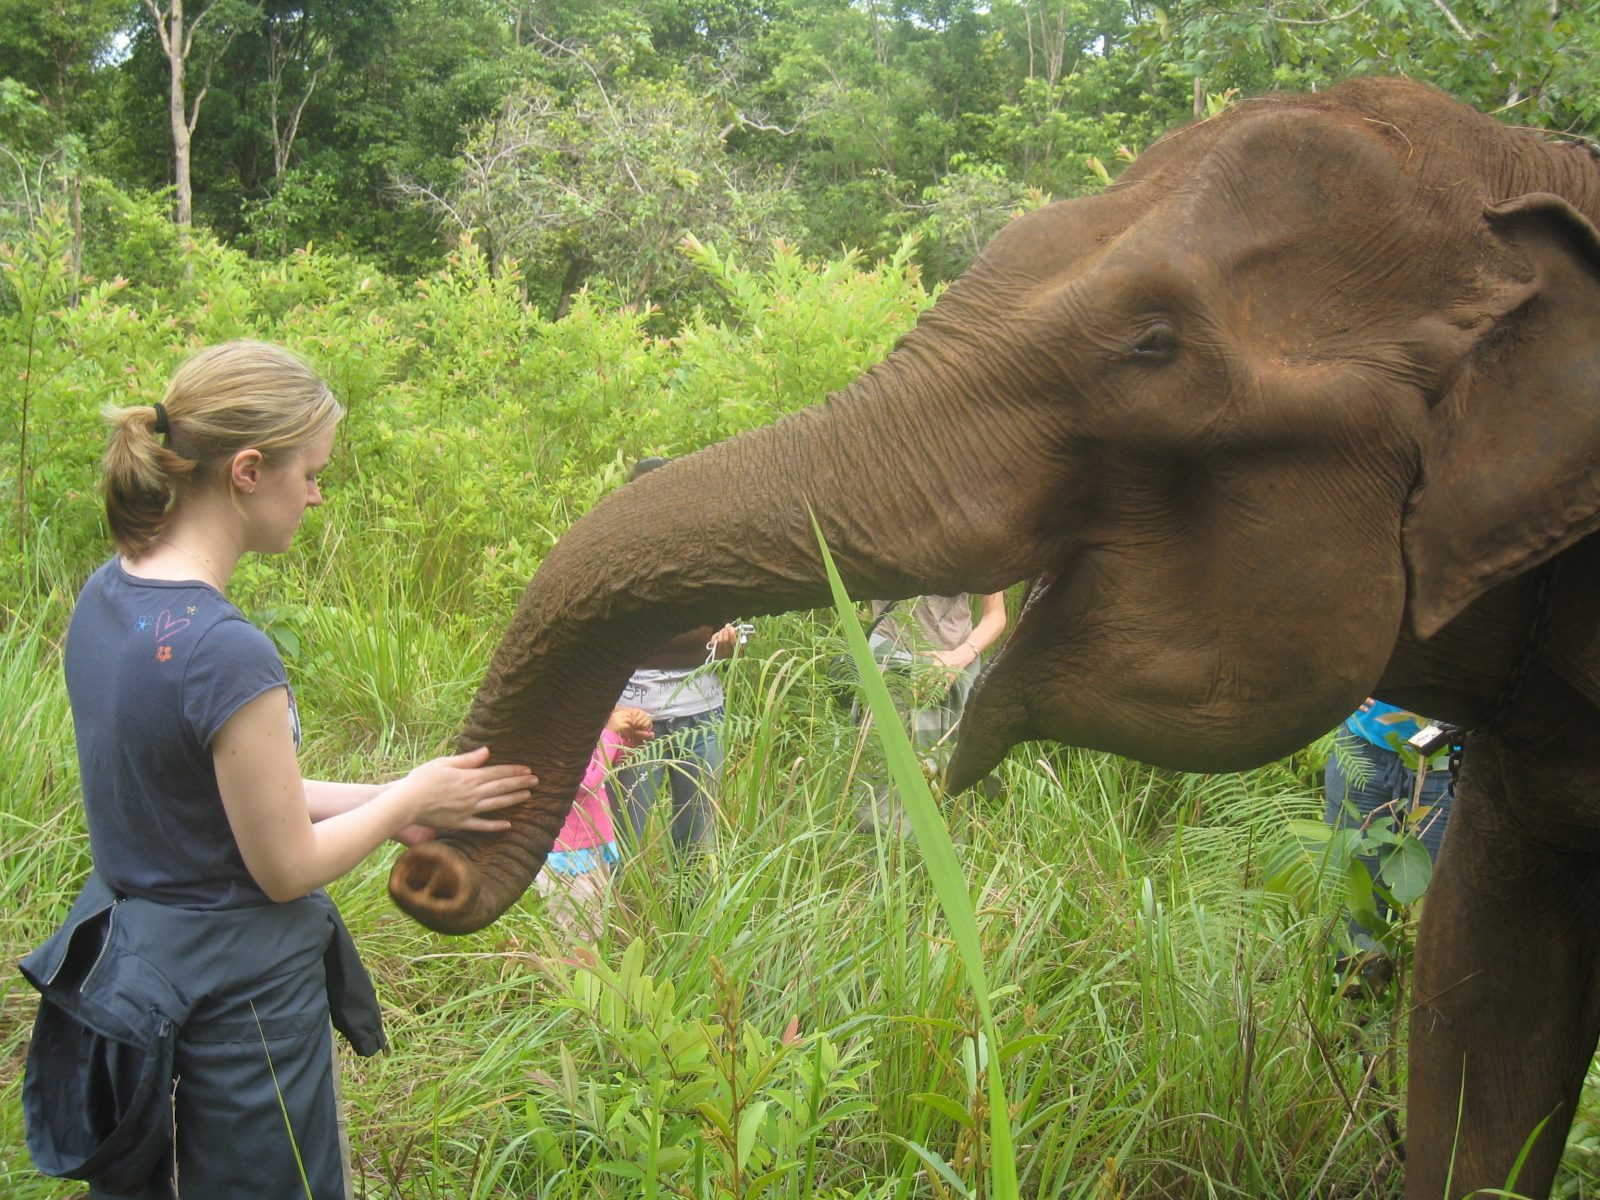 Getting up close with elephants at Elephant Sanctuary